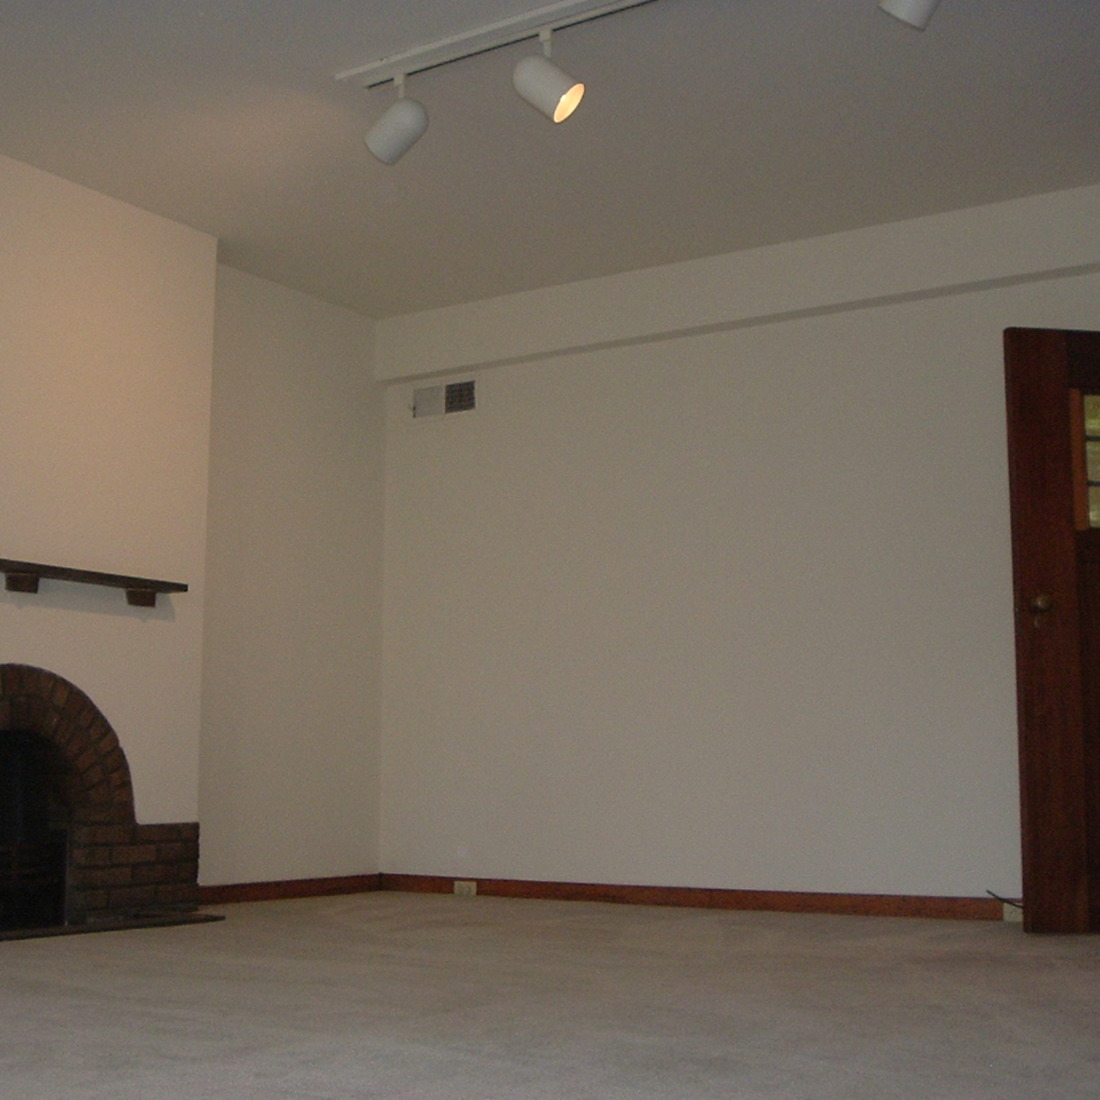 interior of 340 S. Highland Ave, Apt. 6A 2